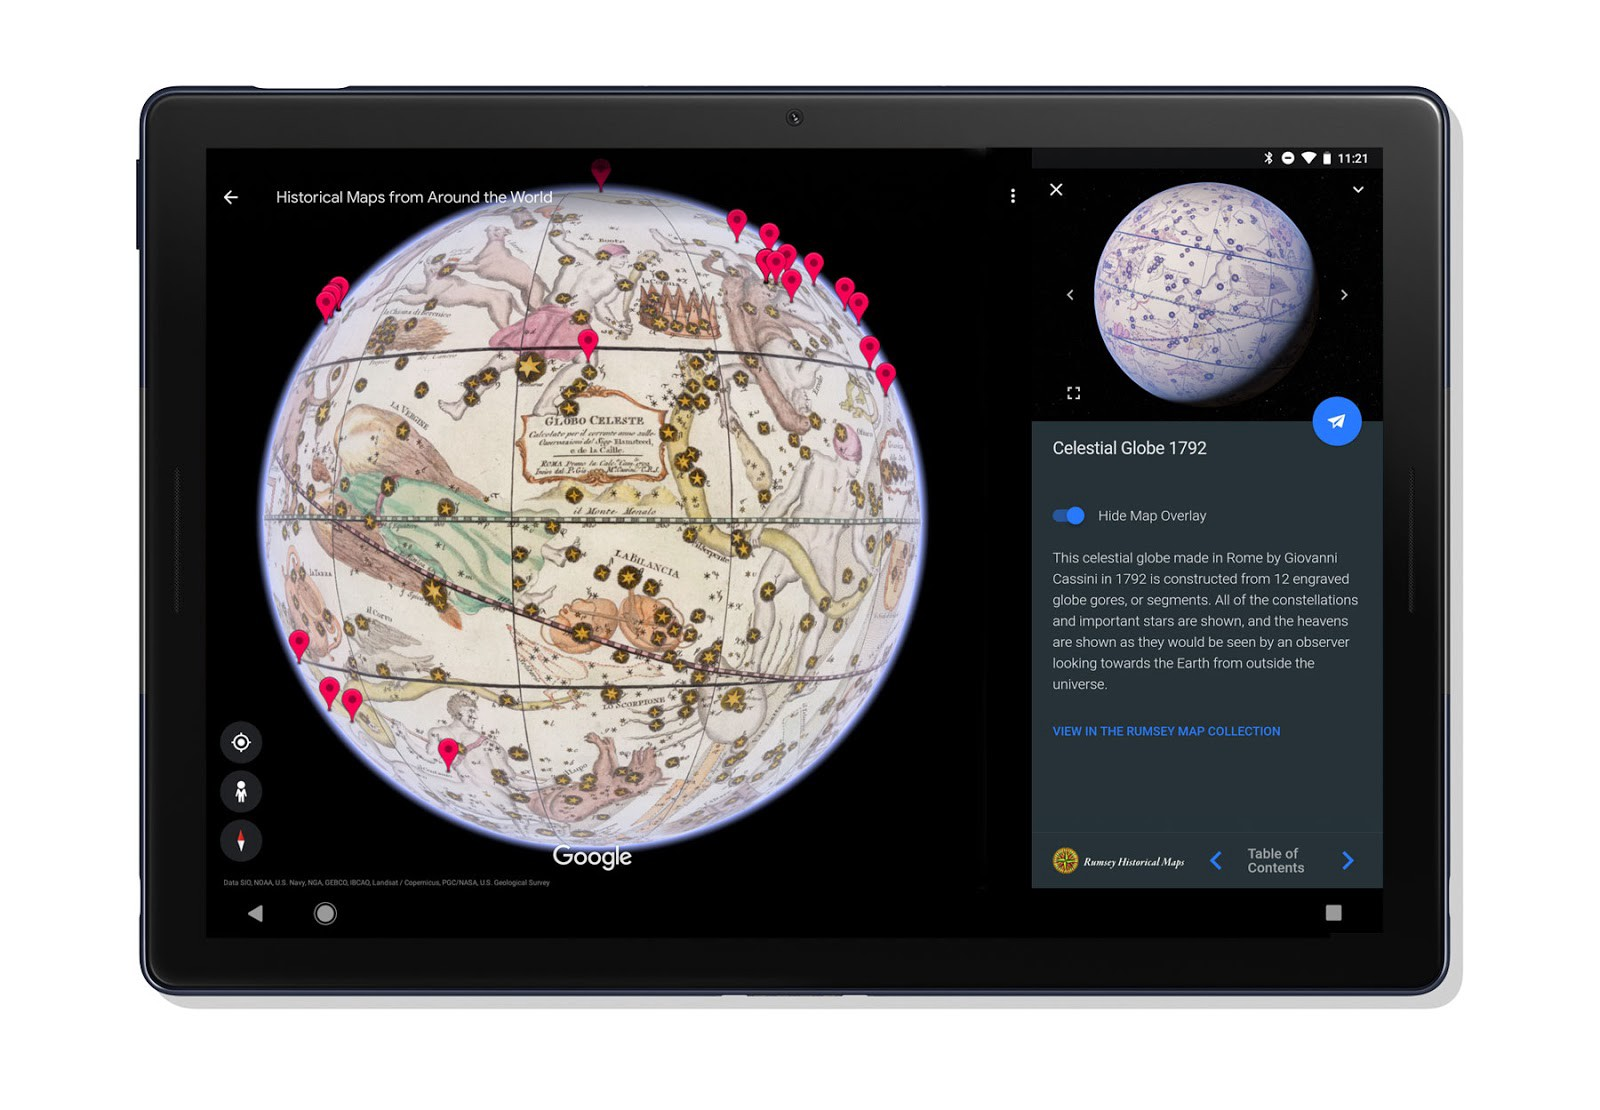 Explore 400 Years of Maps in Google Earth - Google Earth and ... on bing explore, flickr explore, google plus explore,